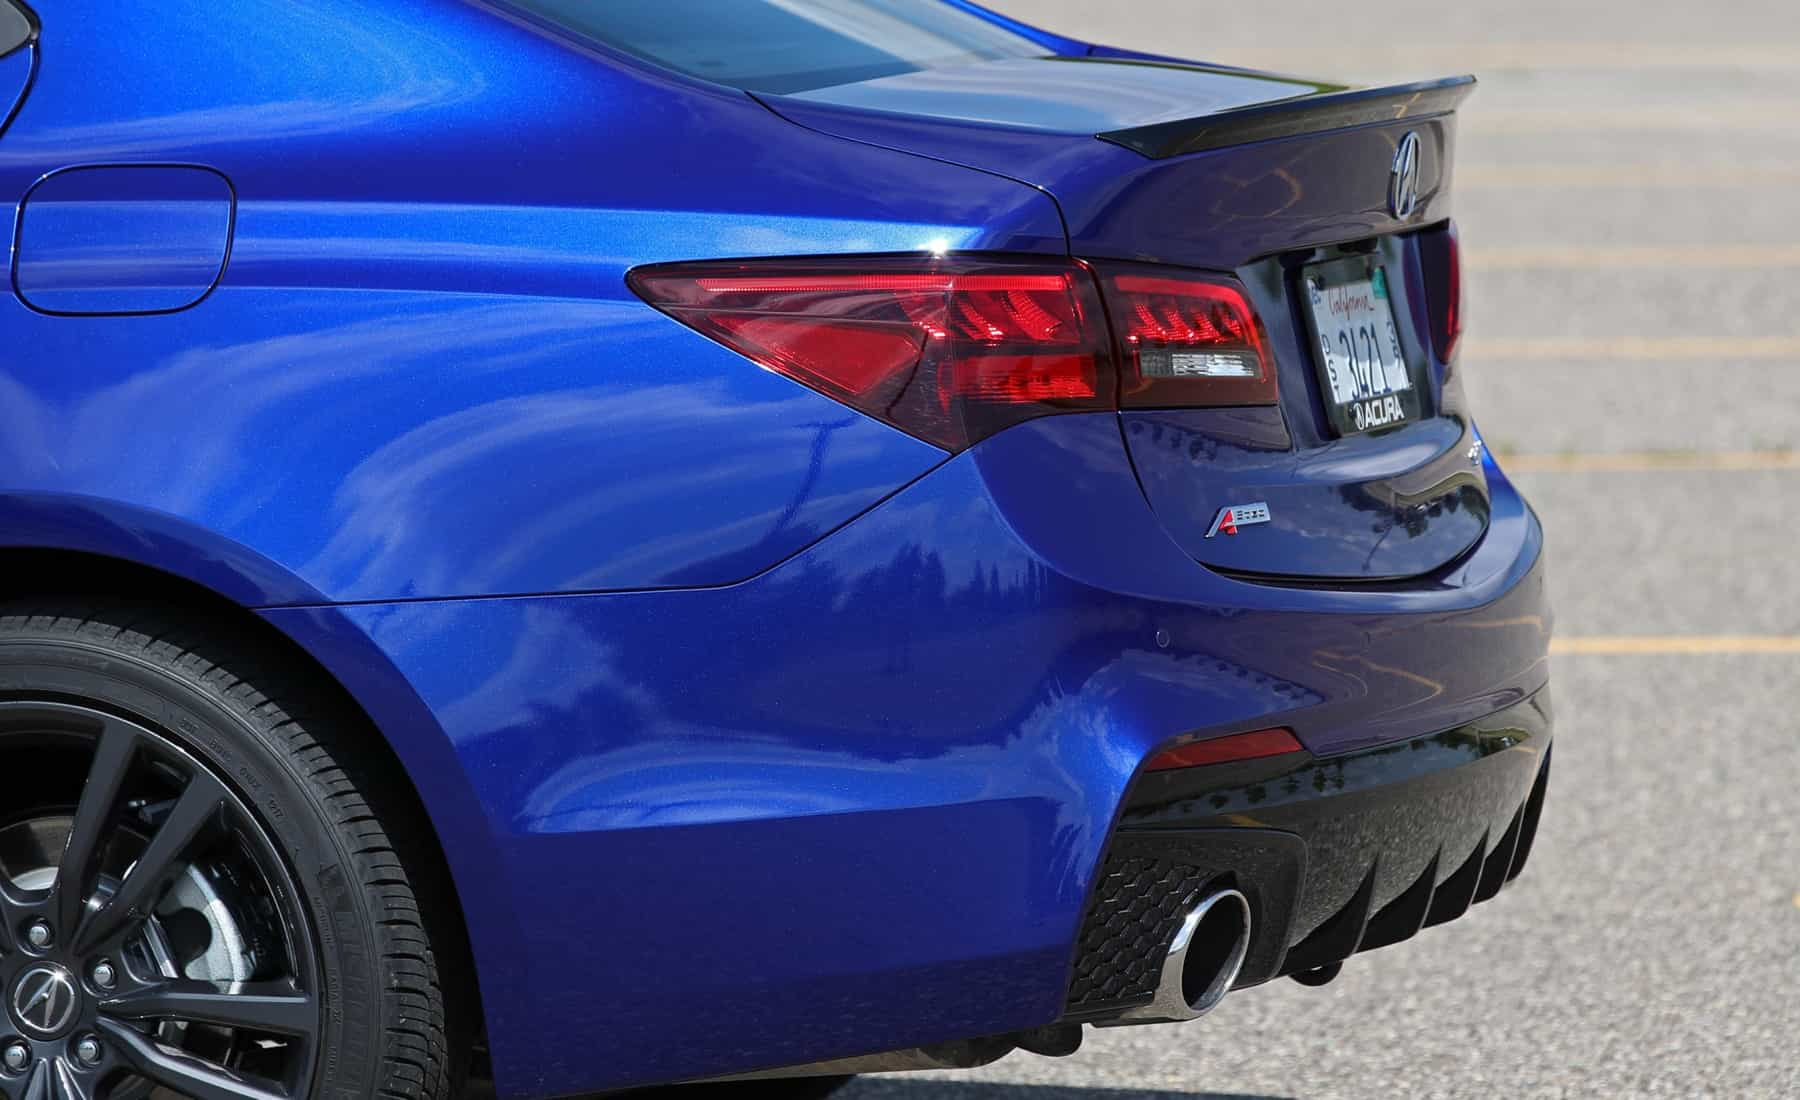 2018 Acura TLX Exterior View Rear Bumper (Photo 14 of 46)